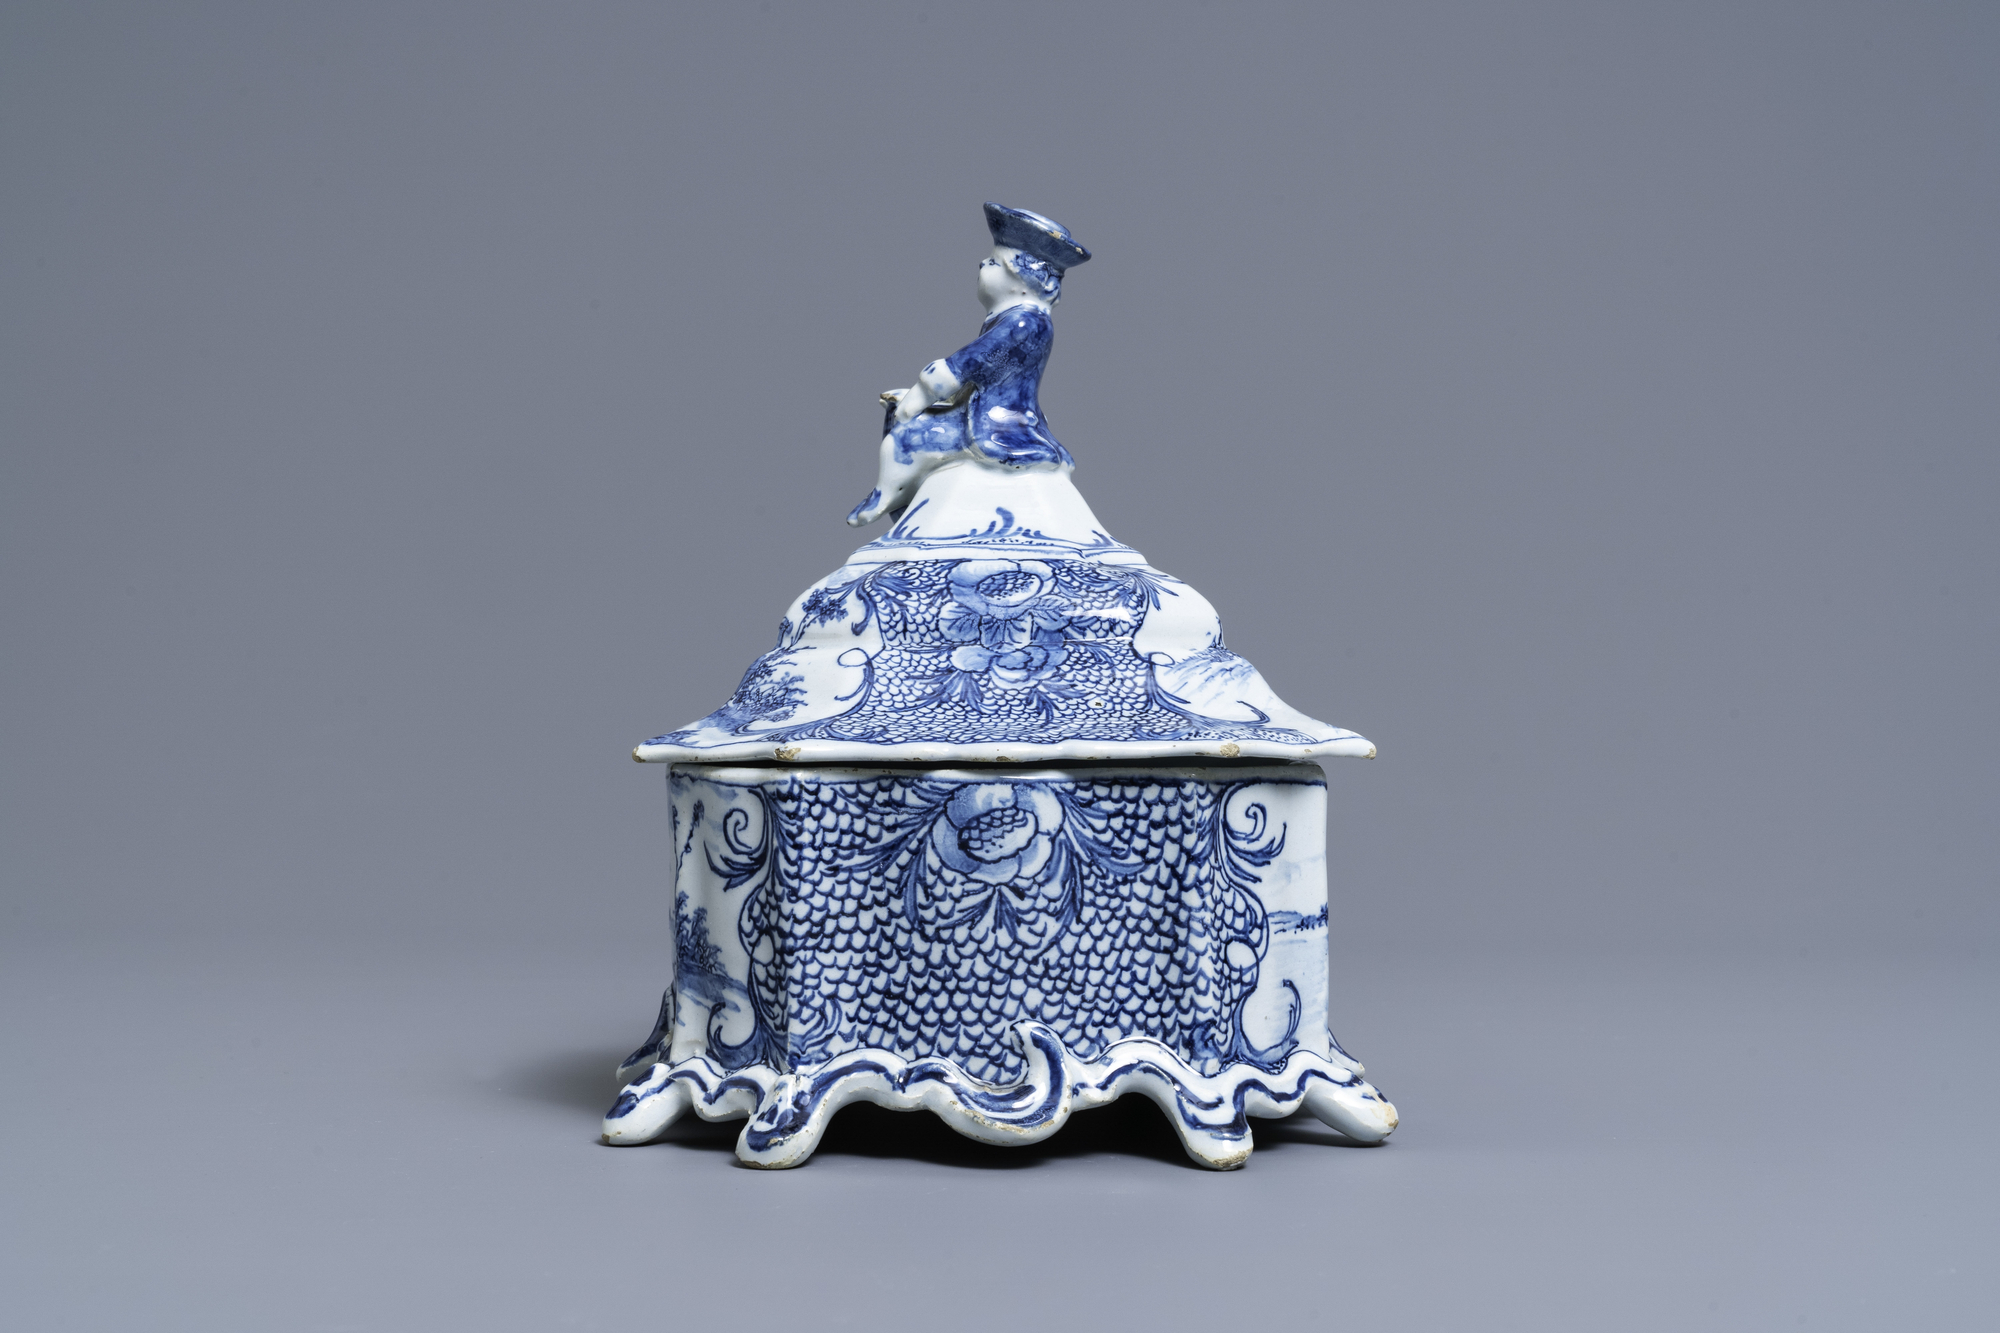 A Dutch Delft blue and white tobacco box and cover with a boy near a barrel, 18th C. - Image 4 of 7